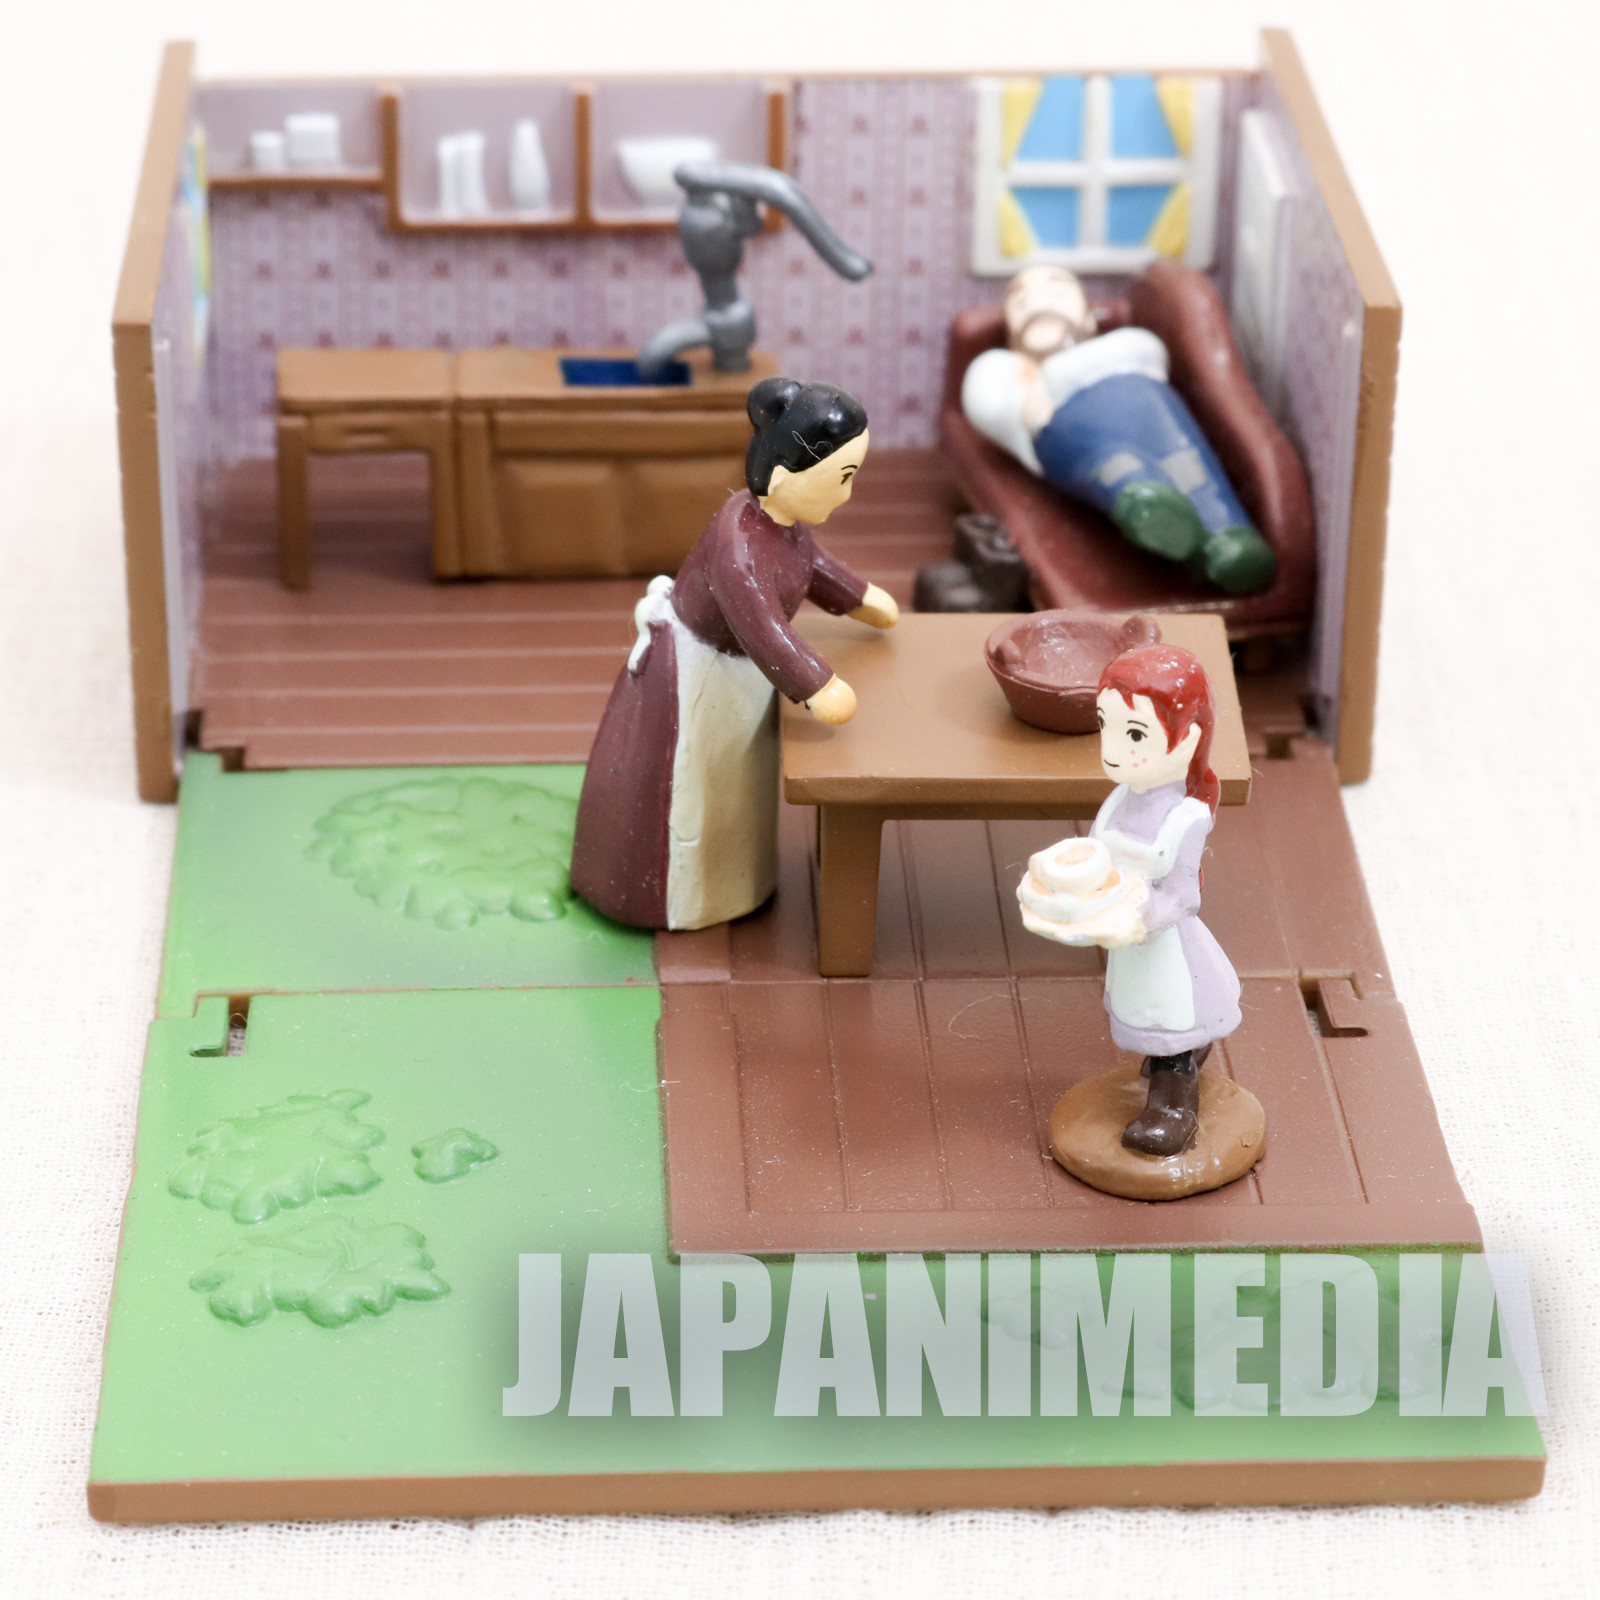 Anne of Green Gables Miniature Diorama Figure Box World Masterpiece Theater ANIME